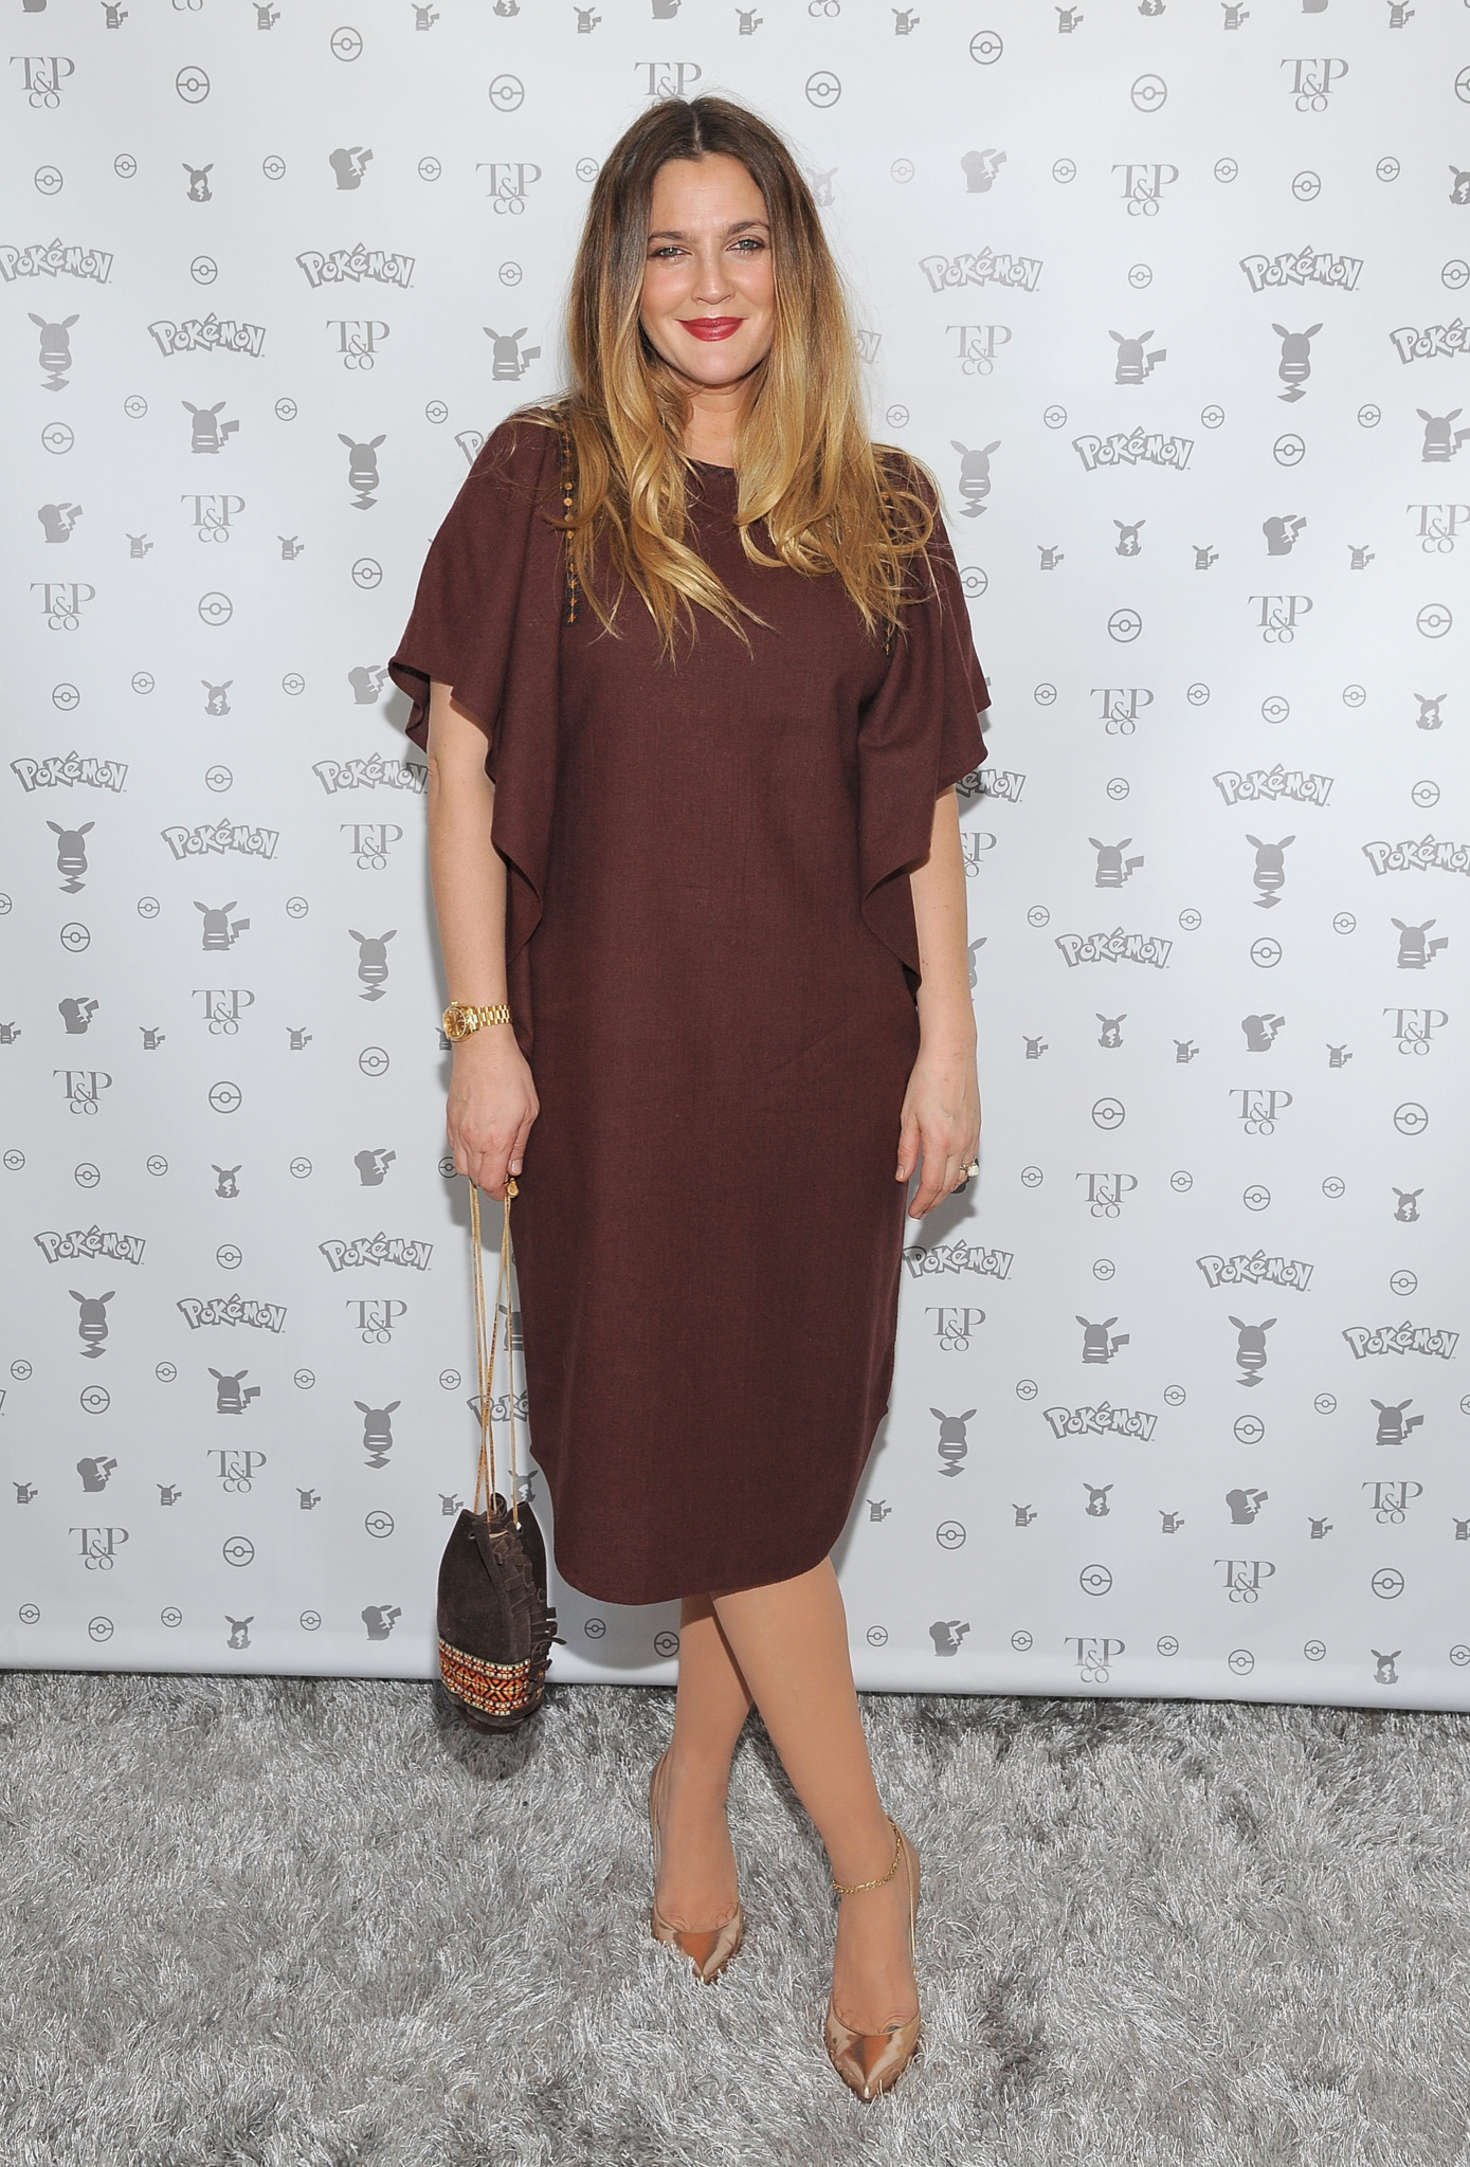 Drew Barrymore 2016 : Drew Barrymore: Tracy Paul and Co Presents Pokemon Afternoon Soiree -10